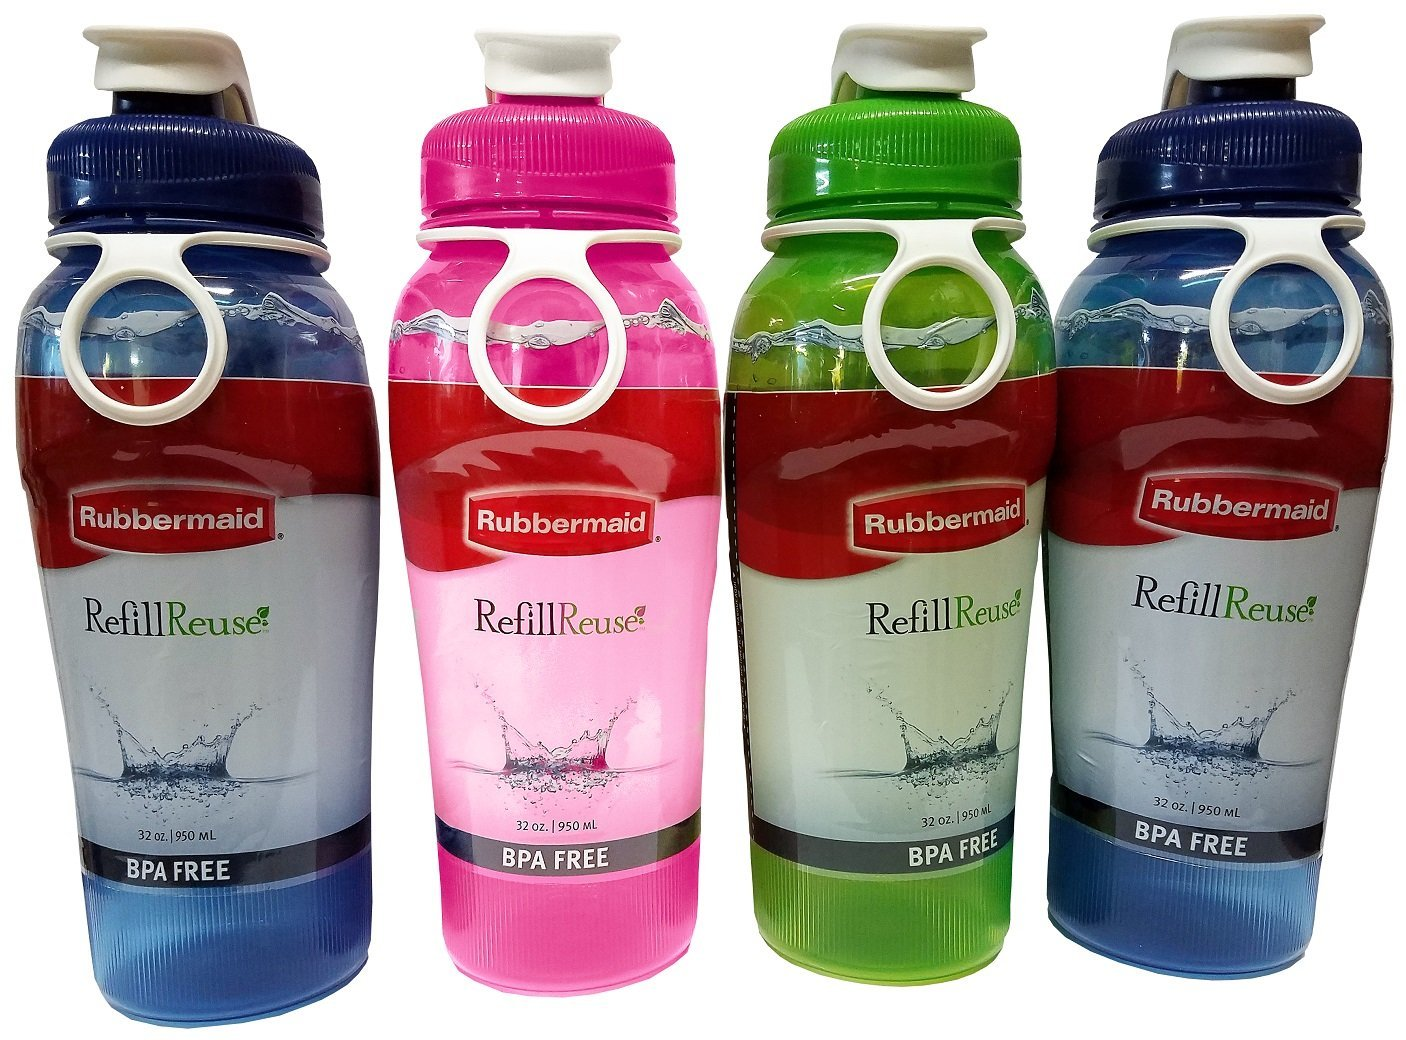 Rubbermaid COMIN16JU045249 714270015007 Refill, Reuse 32-Ounce Jumbo Size  Chug, Assorted Colors, Pack of 4 Bottles, 32 Ounce